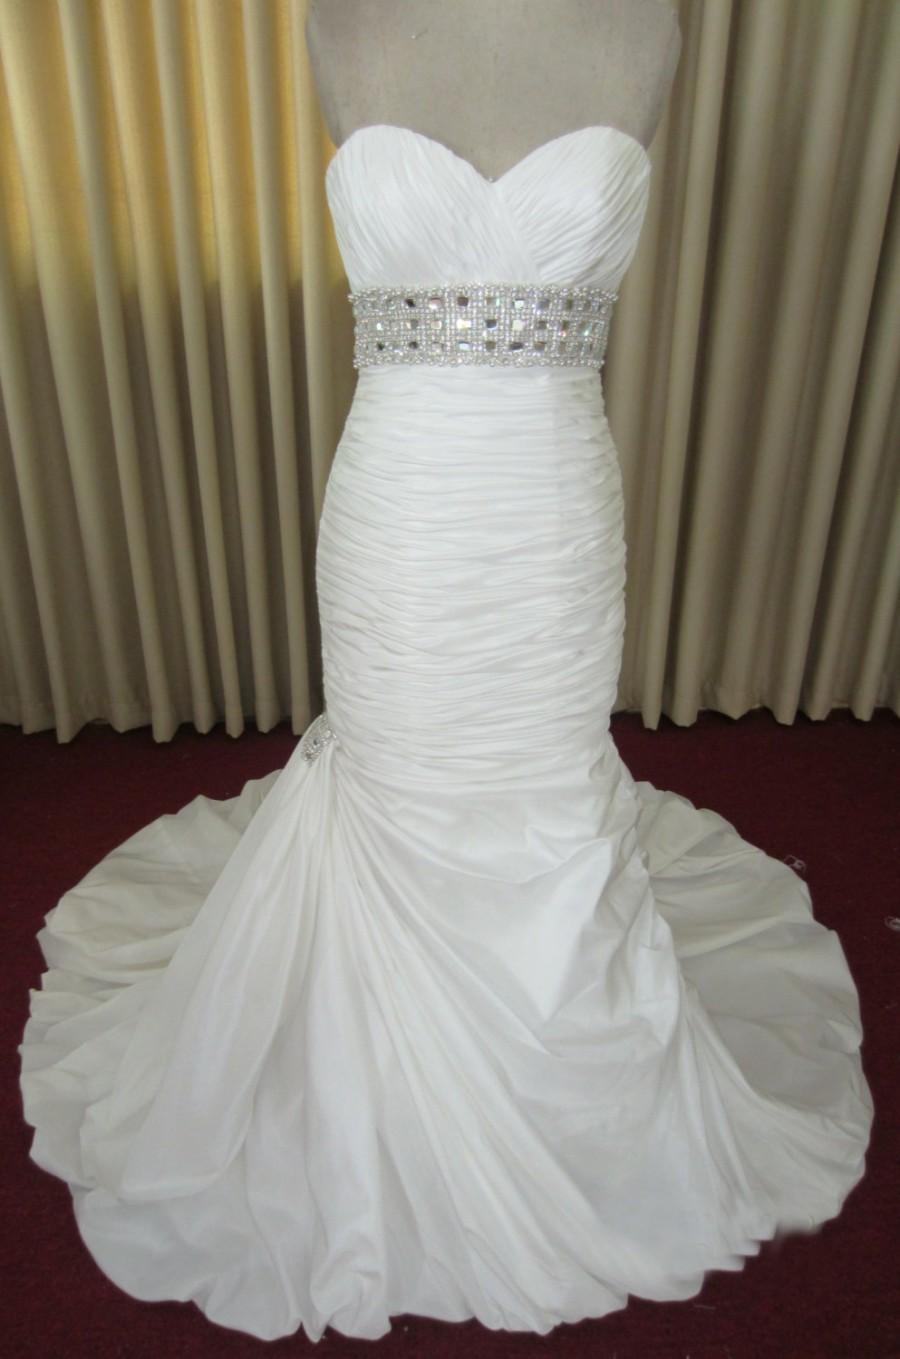 Mermaid sweetheart satin blingy wedding dress 2434214 for Satin sweetheart mermaid wedding dress